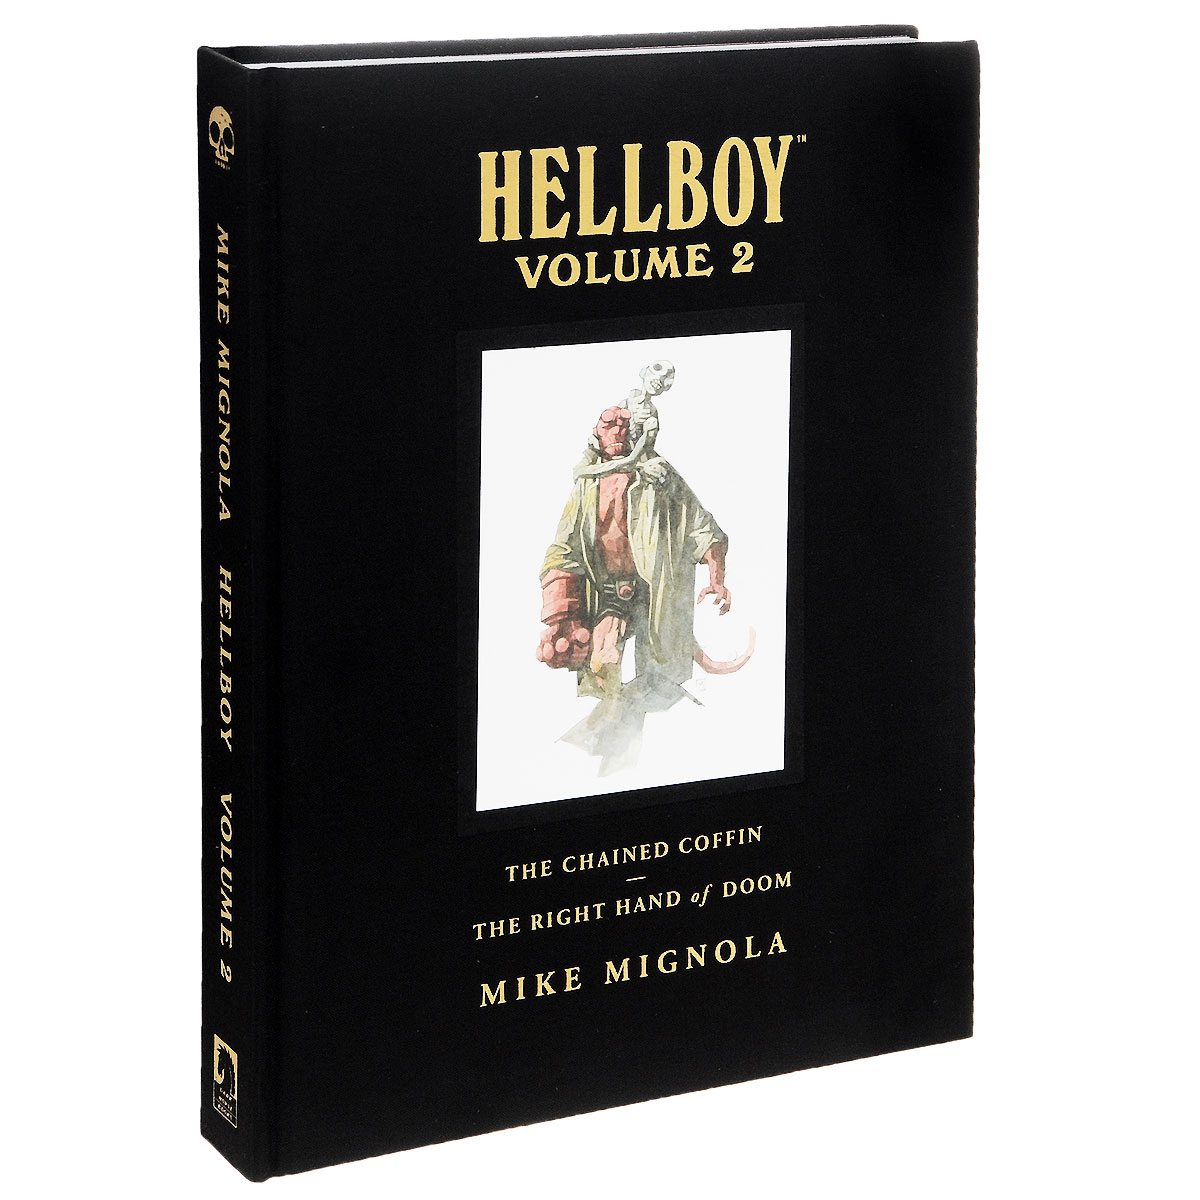 Hellboy: Volume 2: The Chained Coffin, The Right Hand of Doom